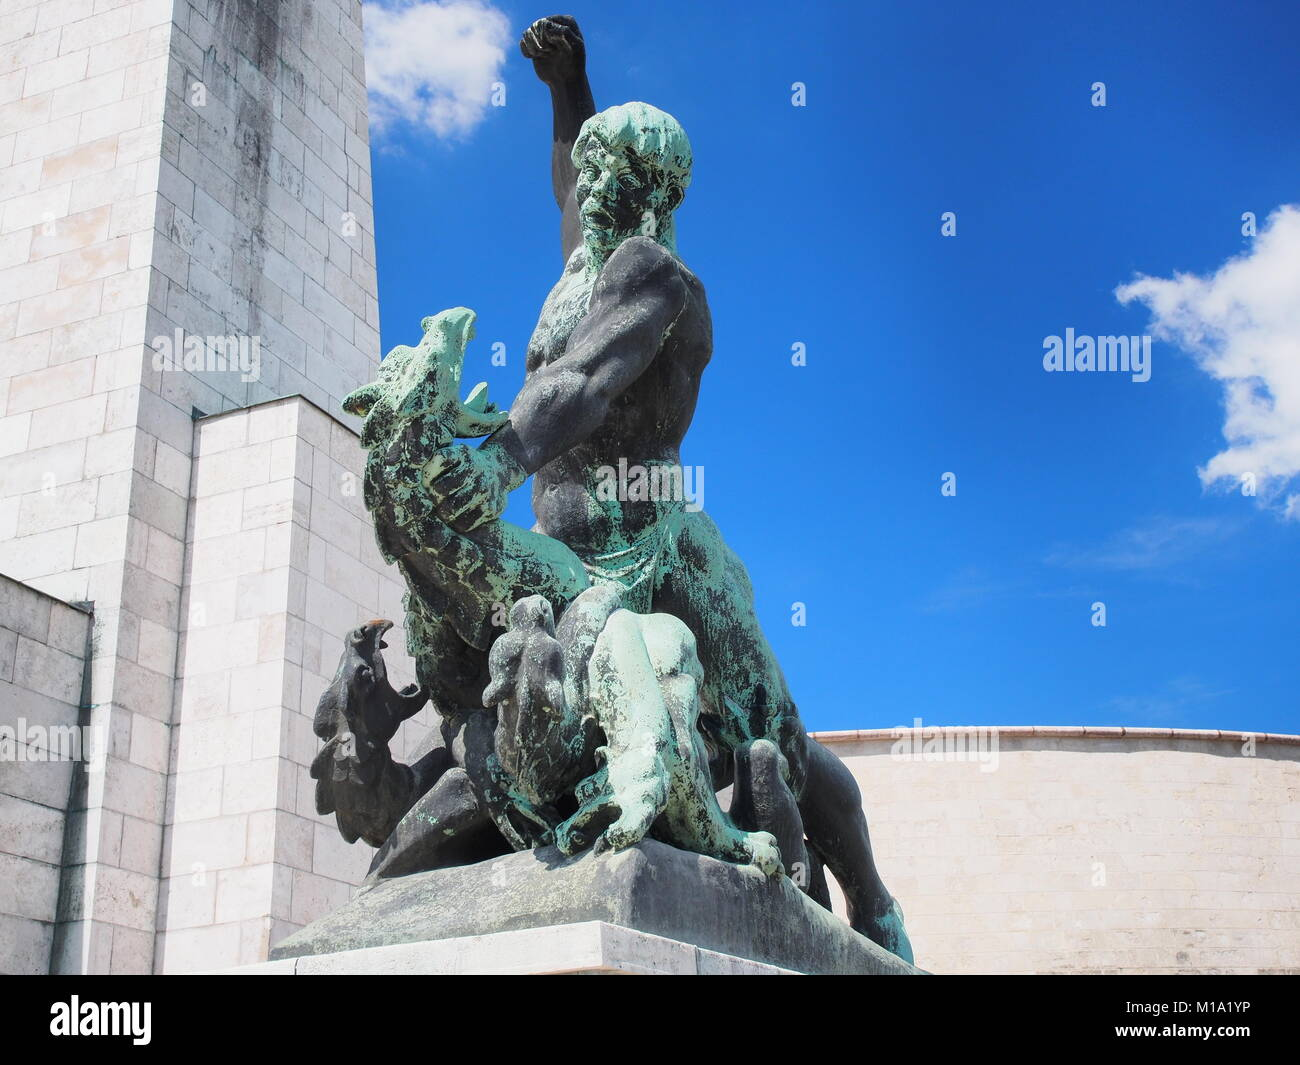 statue of a man fighting a mythical creature representing evil on